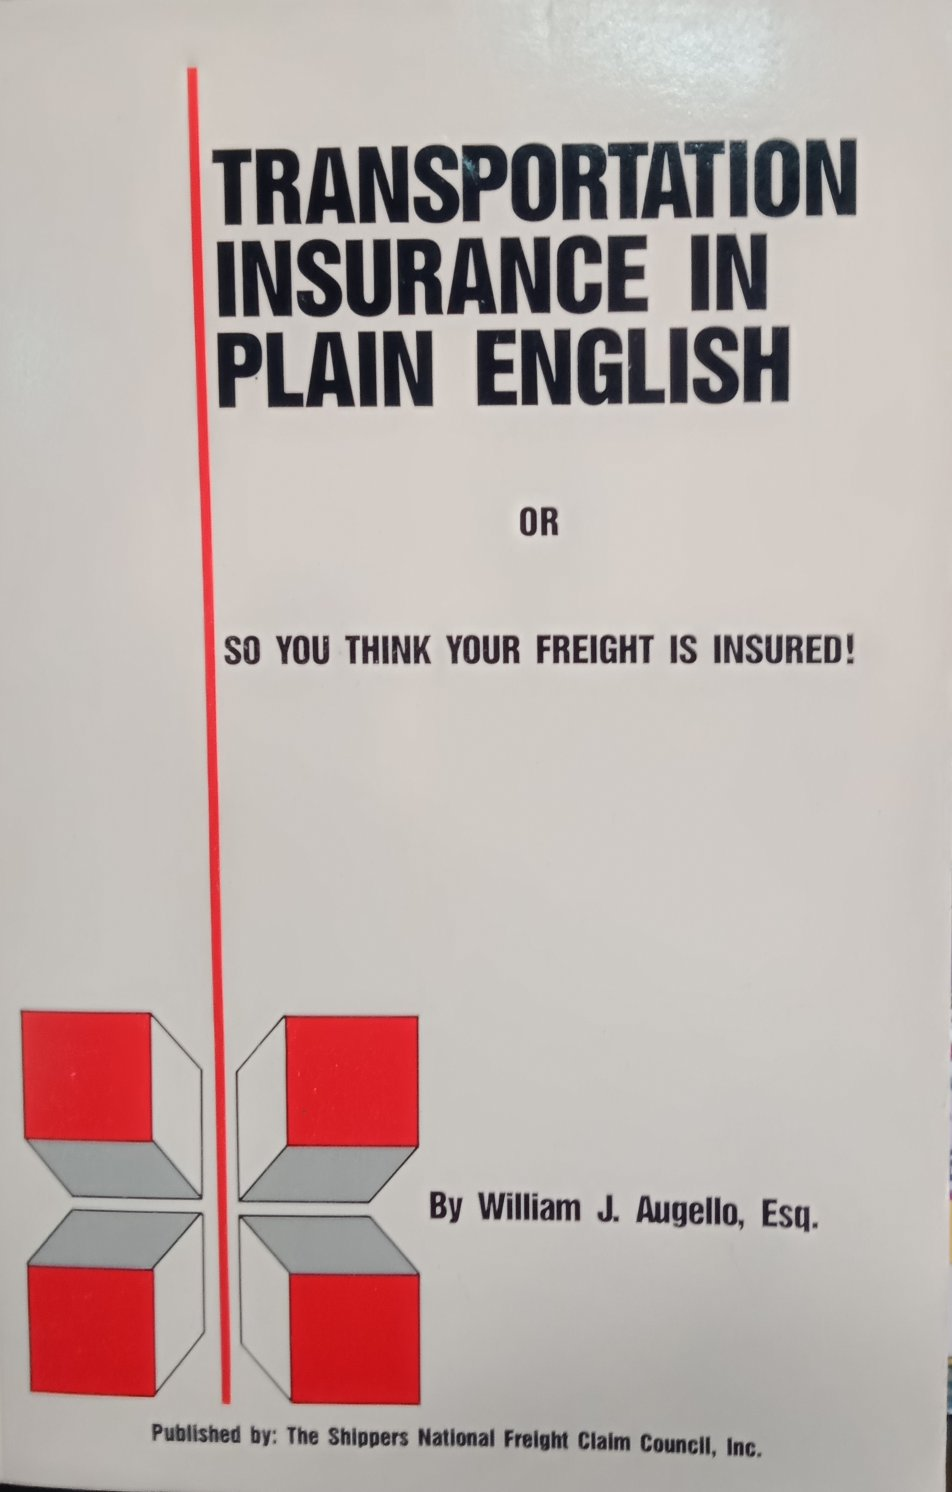 Transportation Insurance In Plain English By William J. Augello